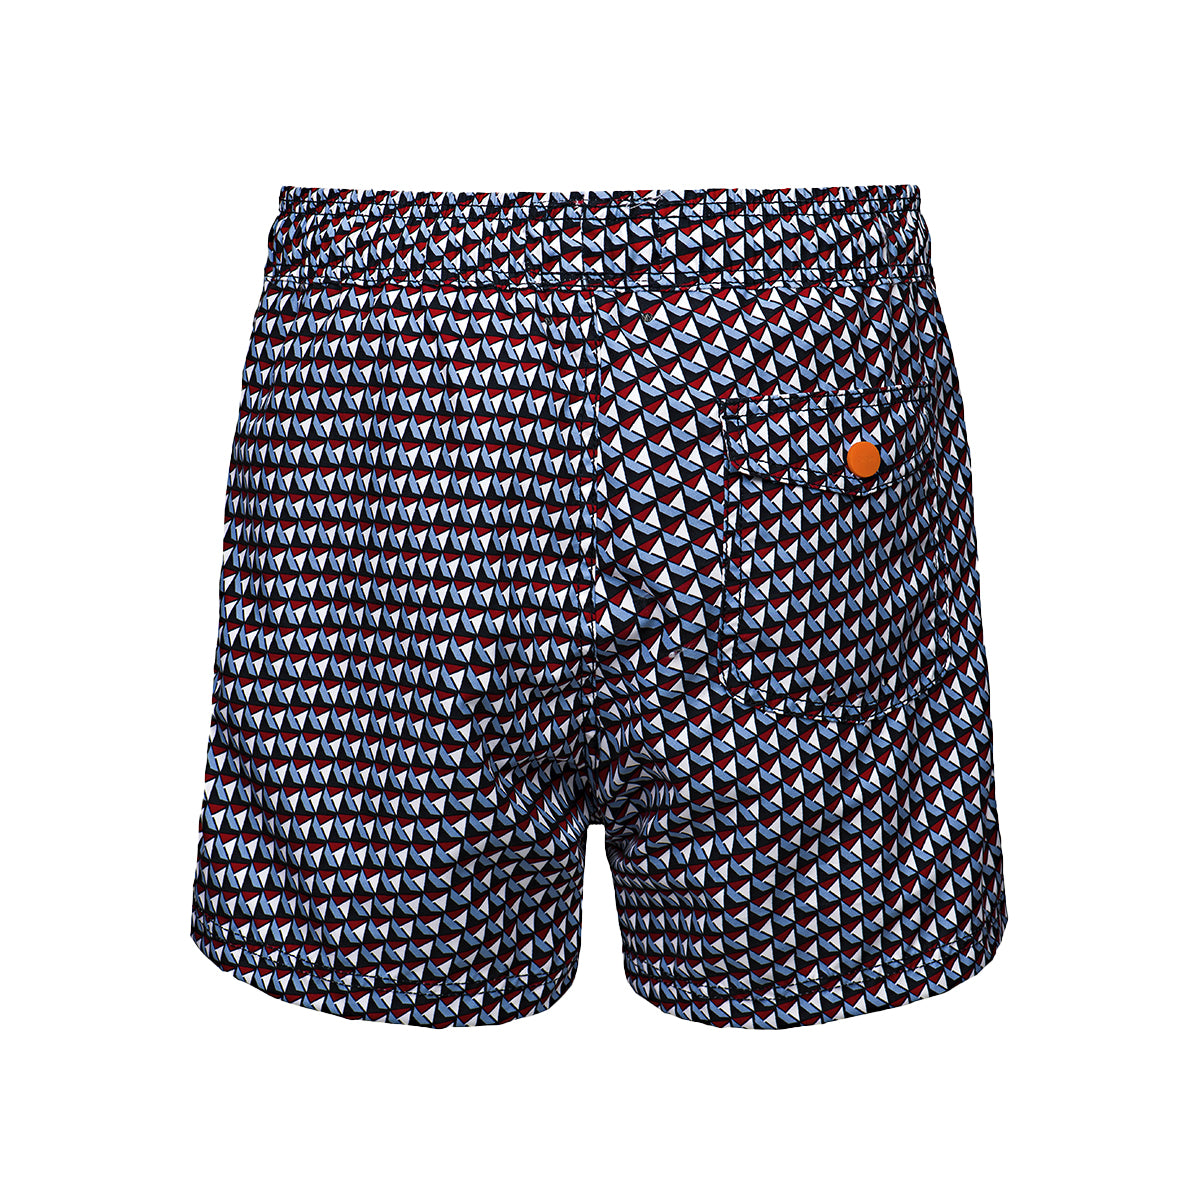 Gavitella Printed Bathing Shorts - background::white,variant::navy